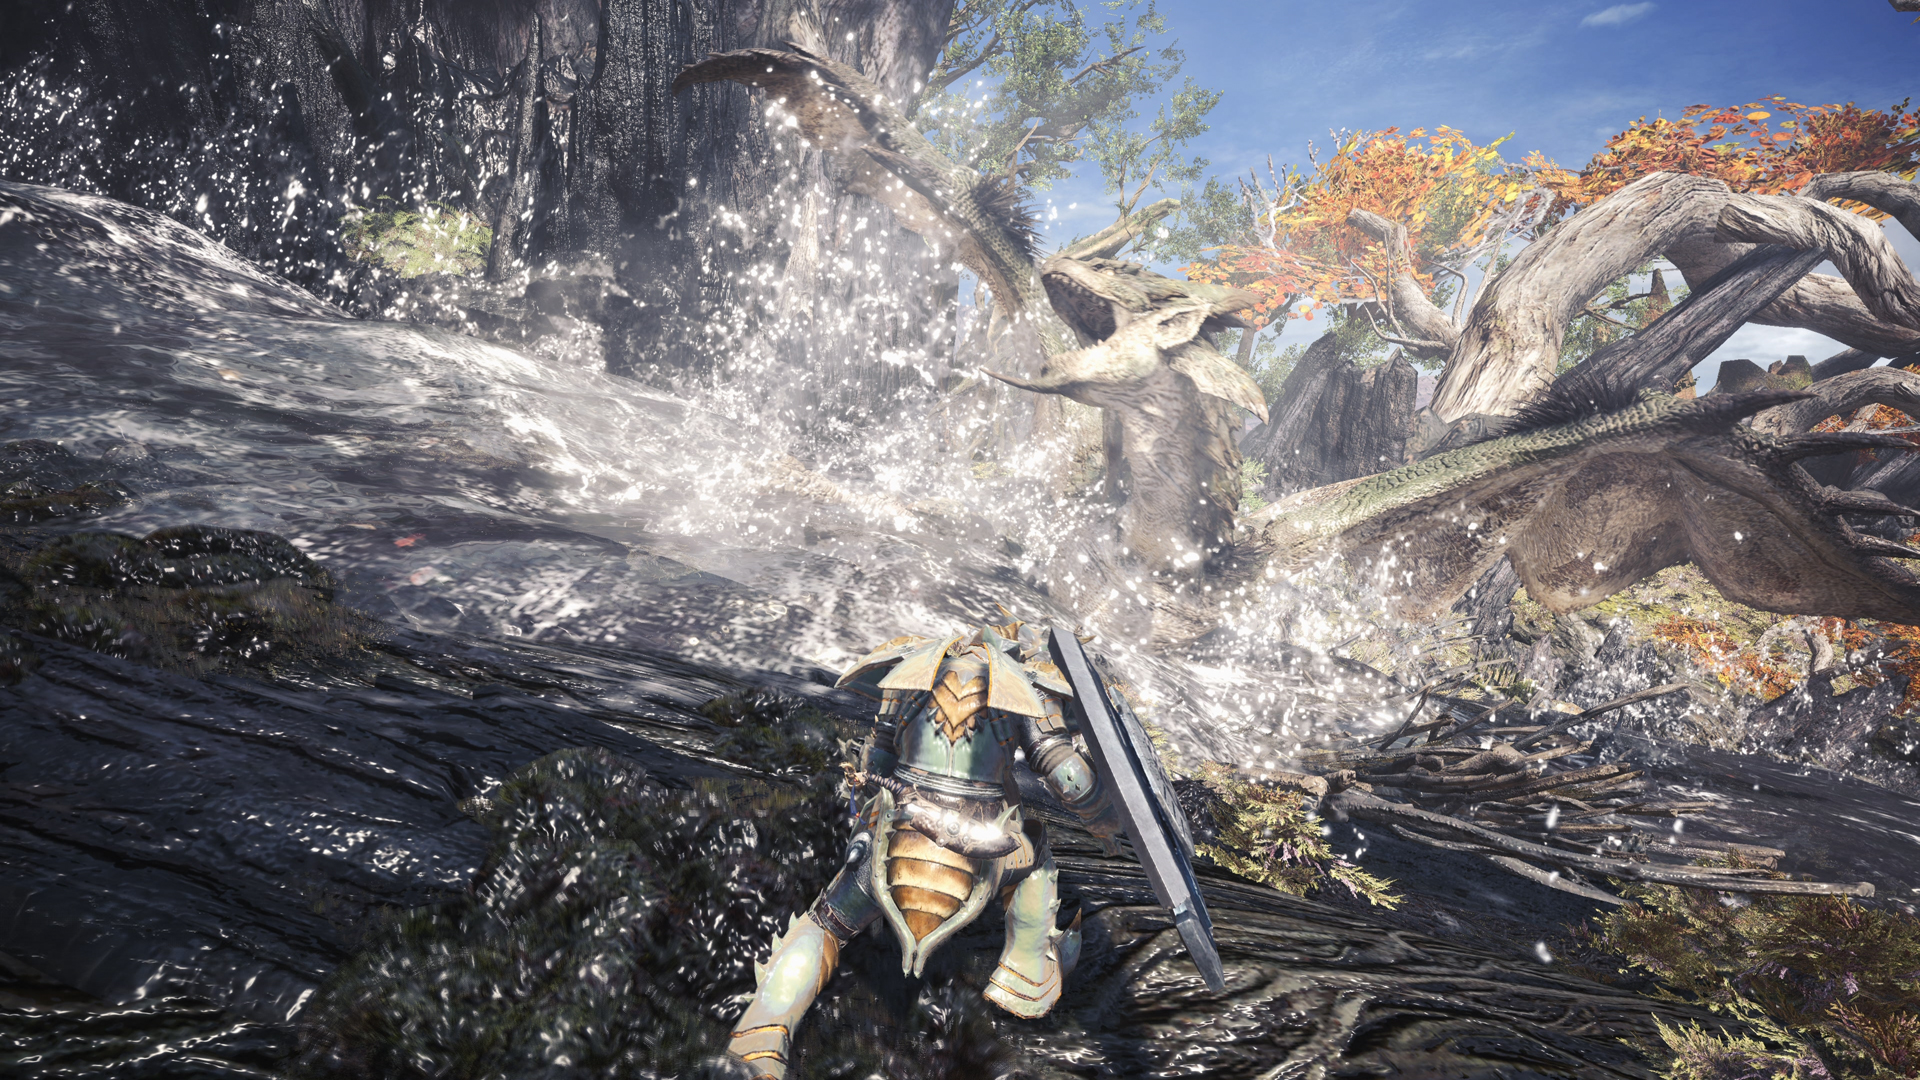 Monster Hunter: World will not launch with cross-platform or mod